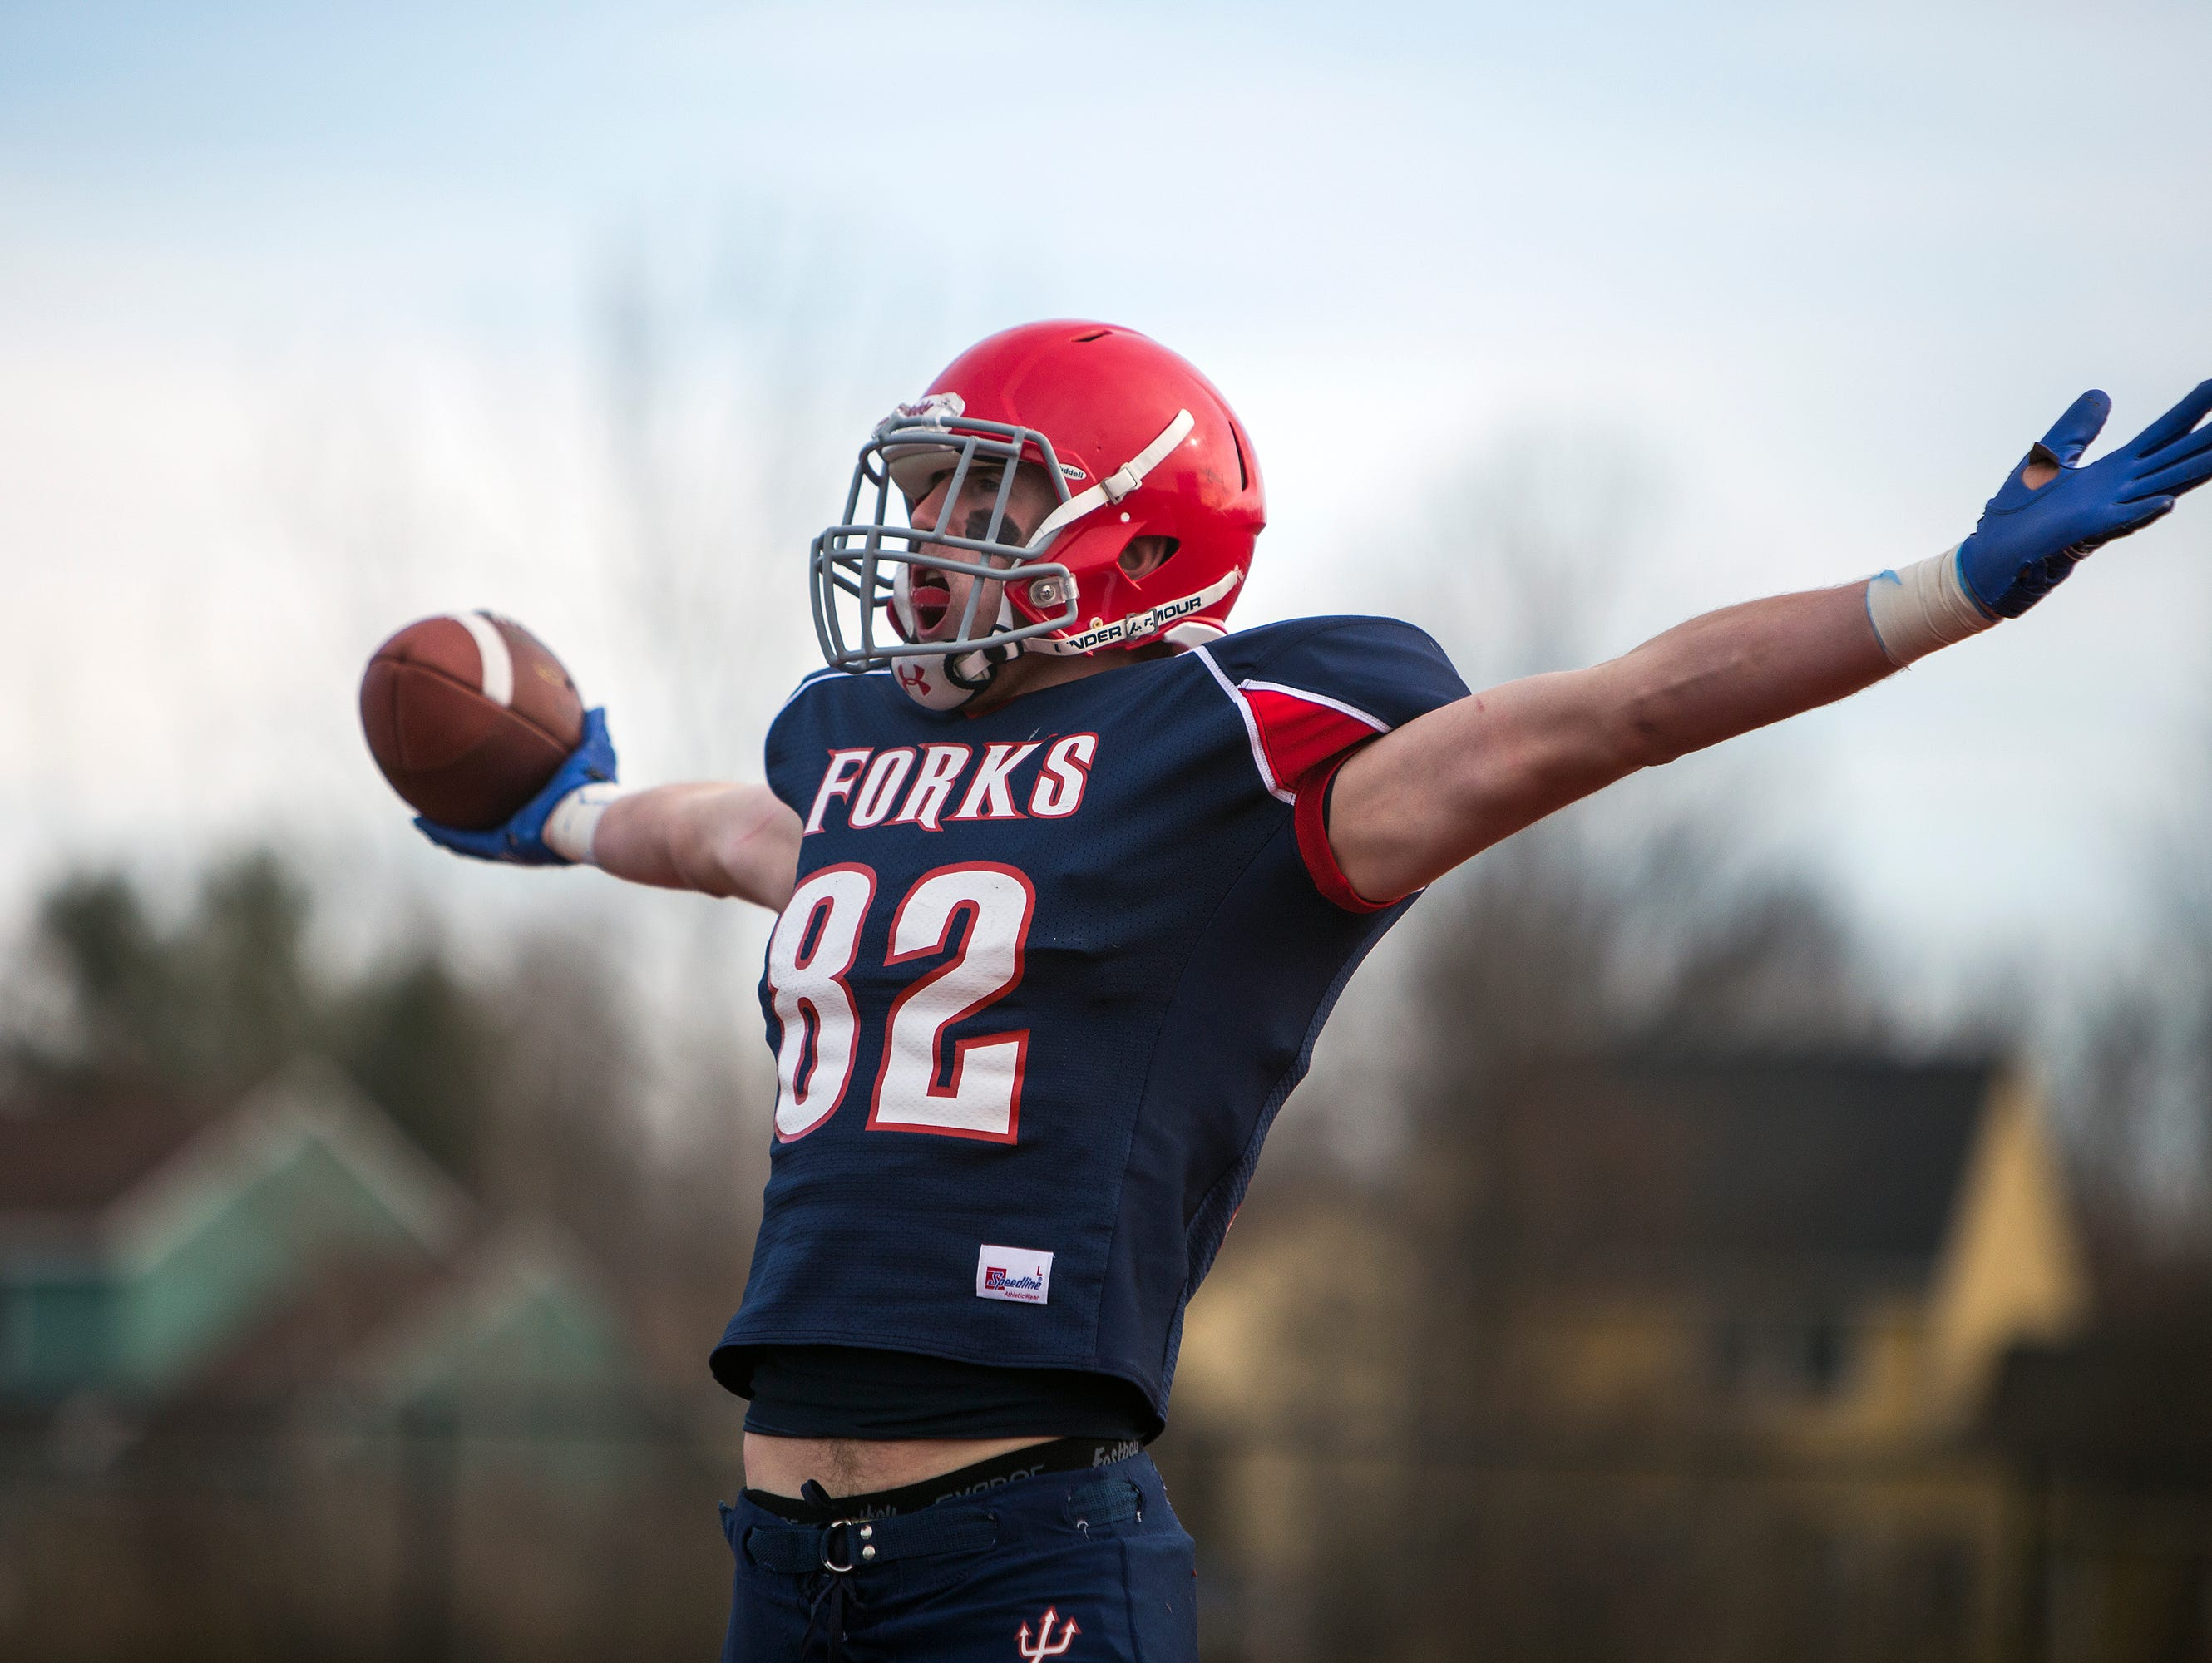 Chenango Forks tight end Trevor Borchardt celebrates his touchdown reception during the first quarter of the Class C state playoff semifinal against Bath on Saturday, Nov. 21, 2015.